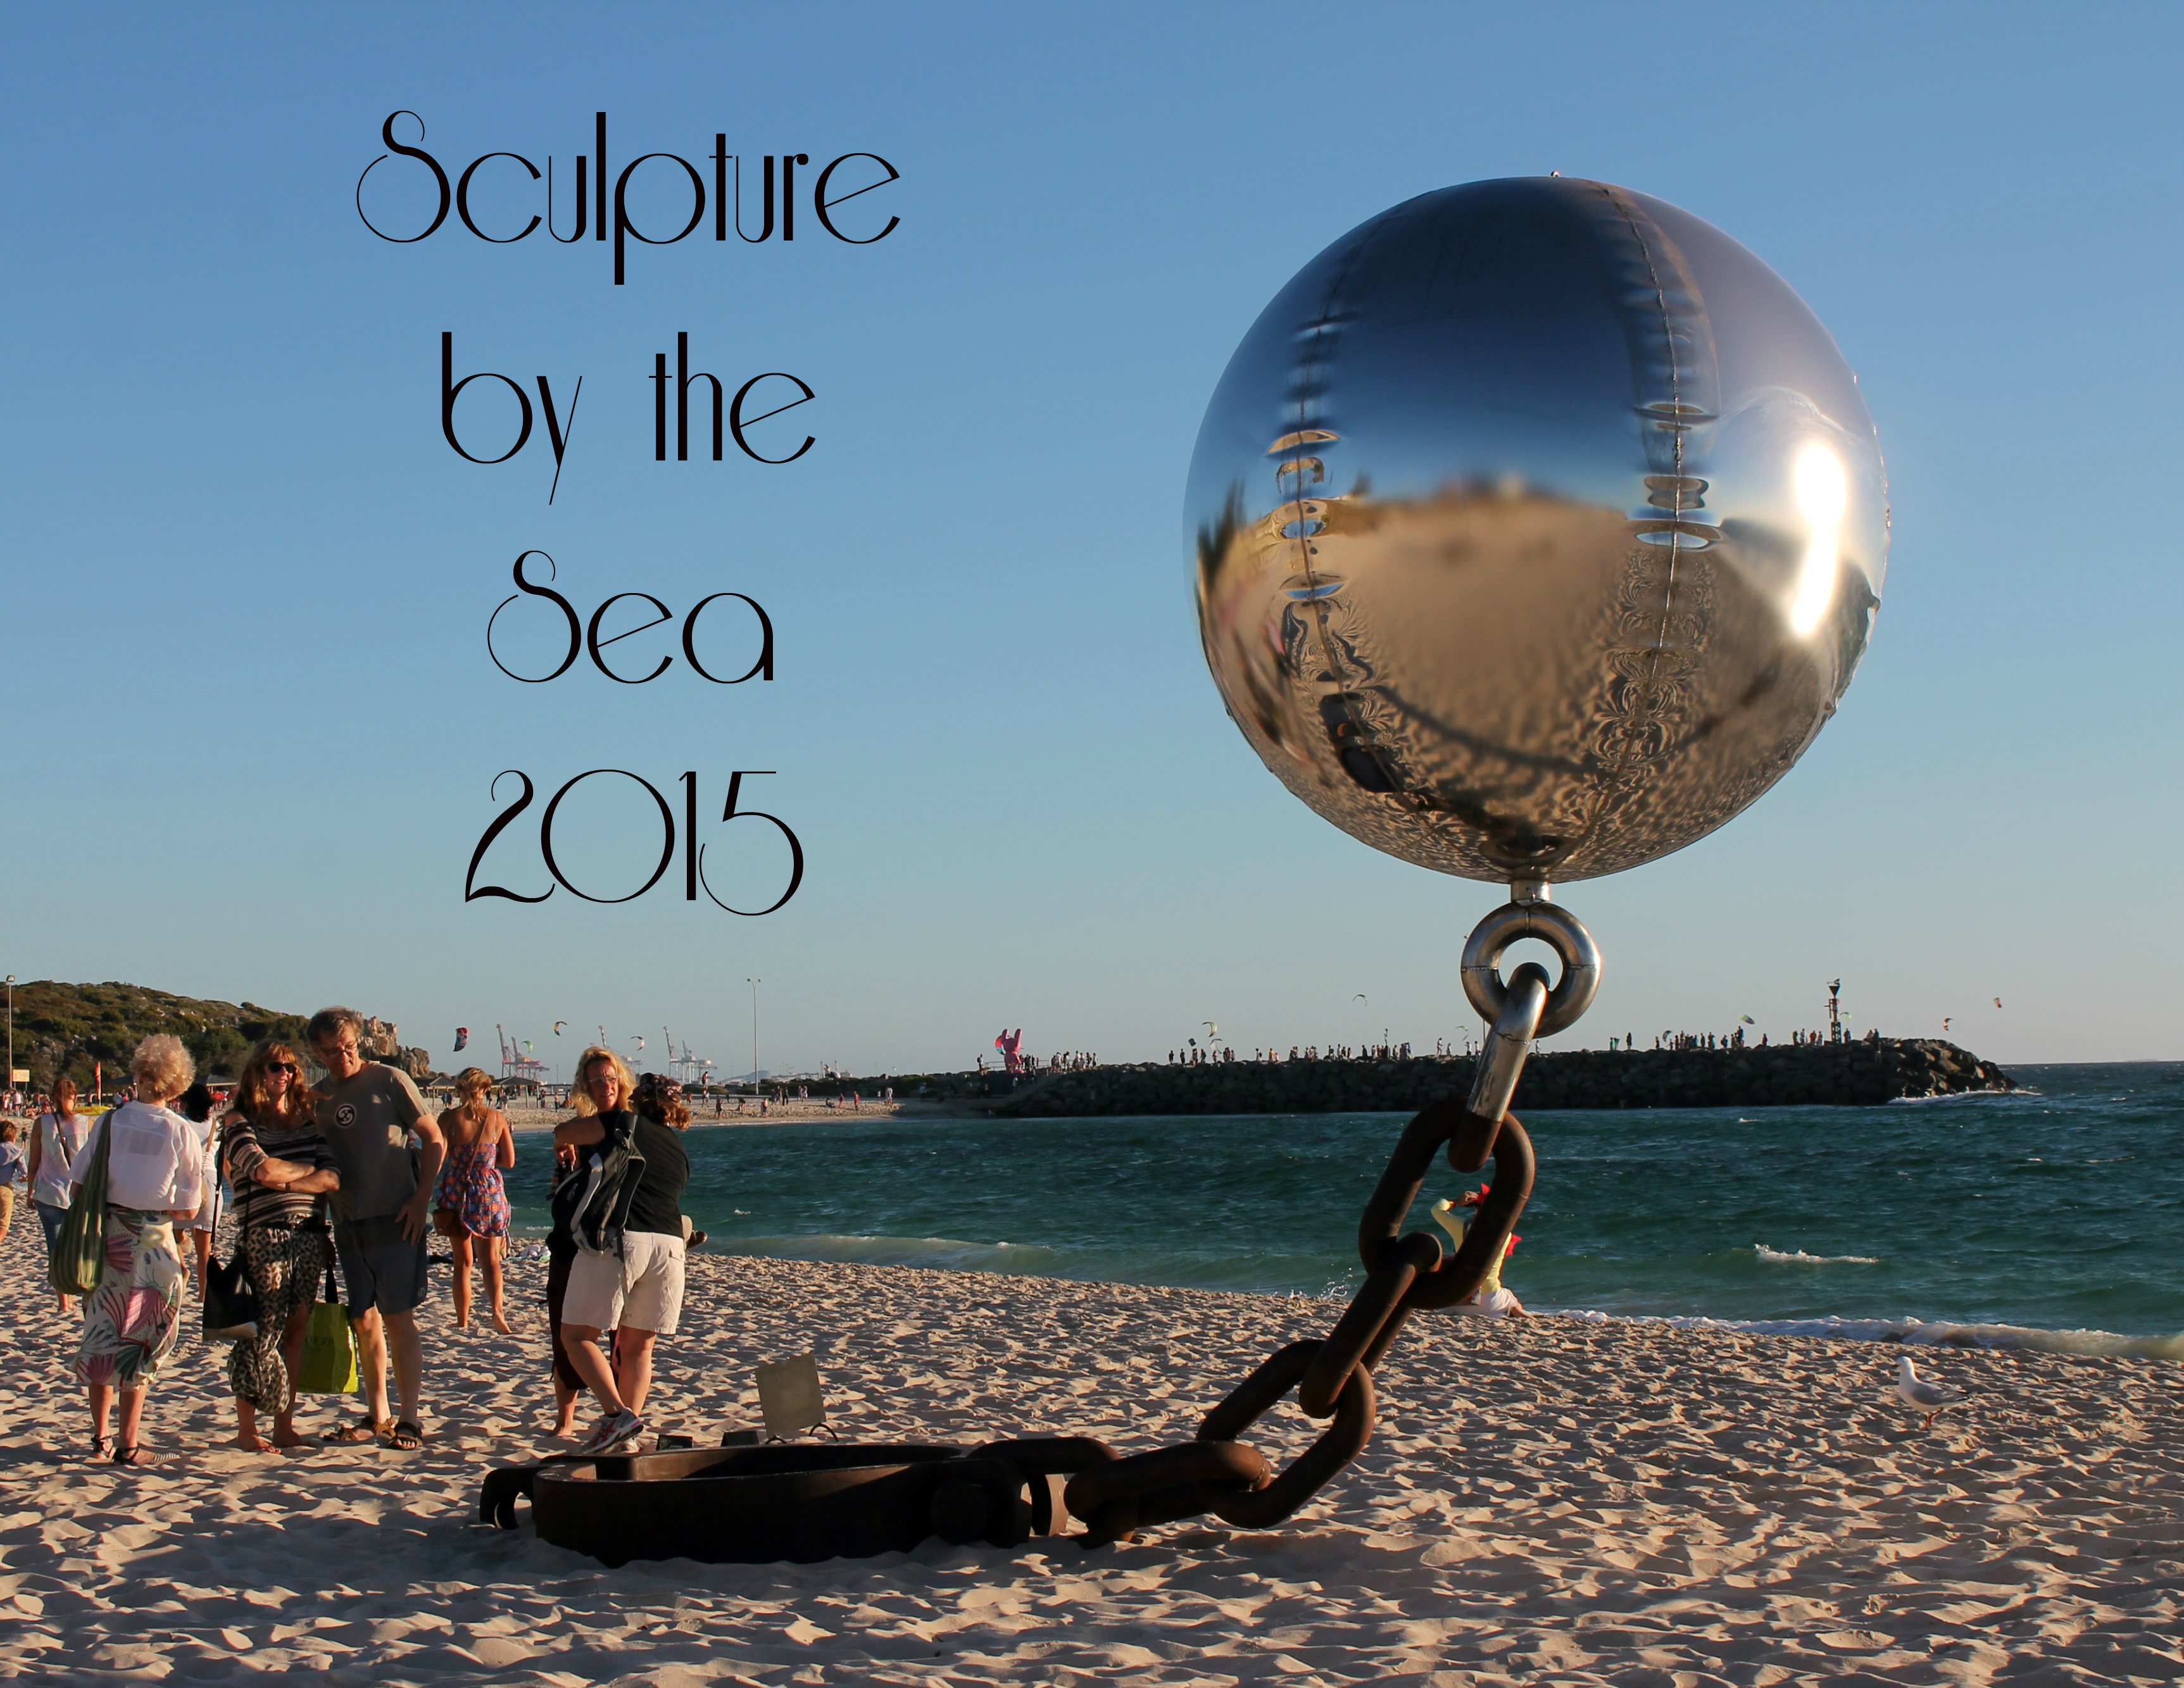 Sculpture by the Sea 2015 | Agent Mystery Case | Cottesloe Beach